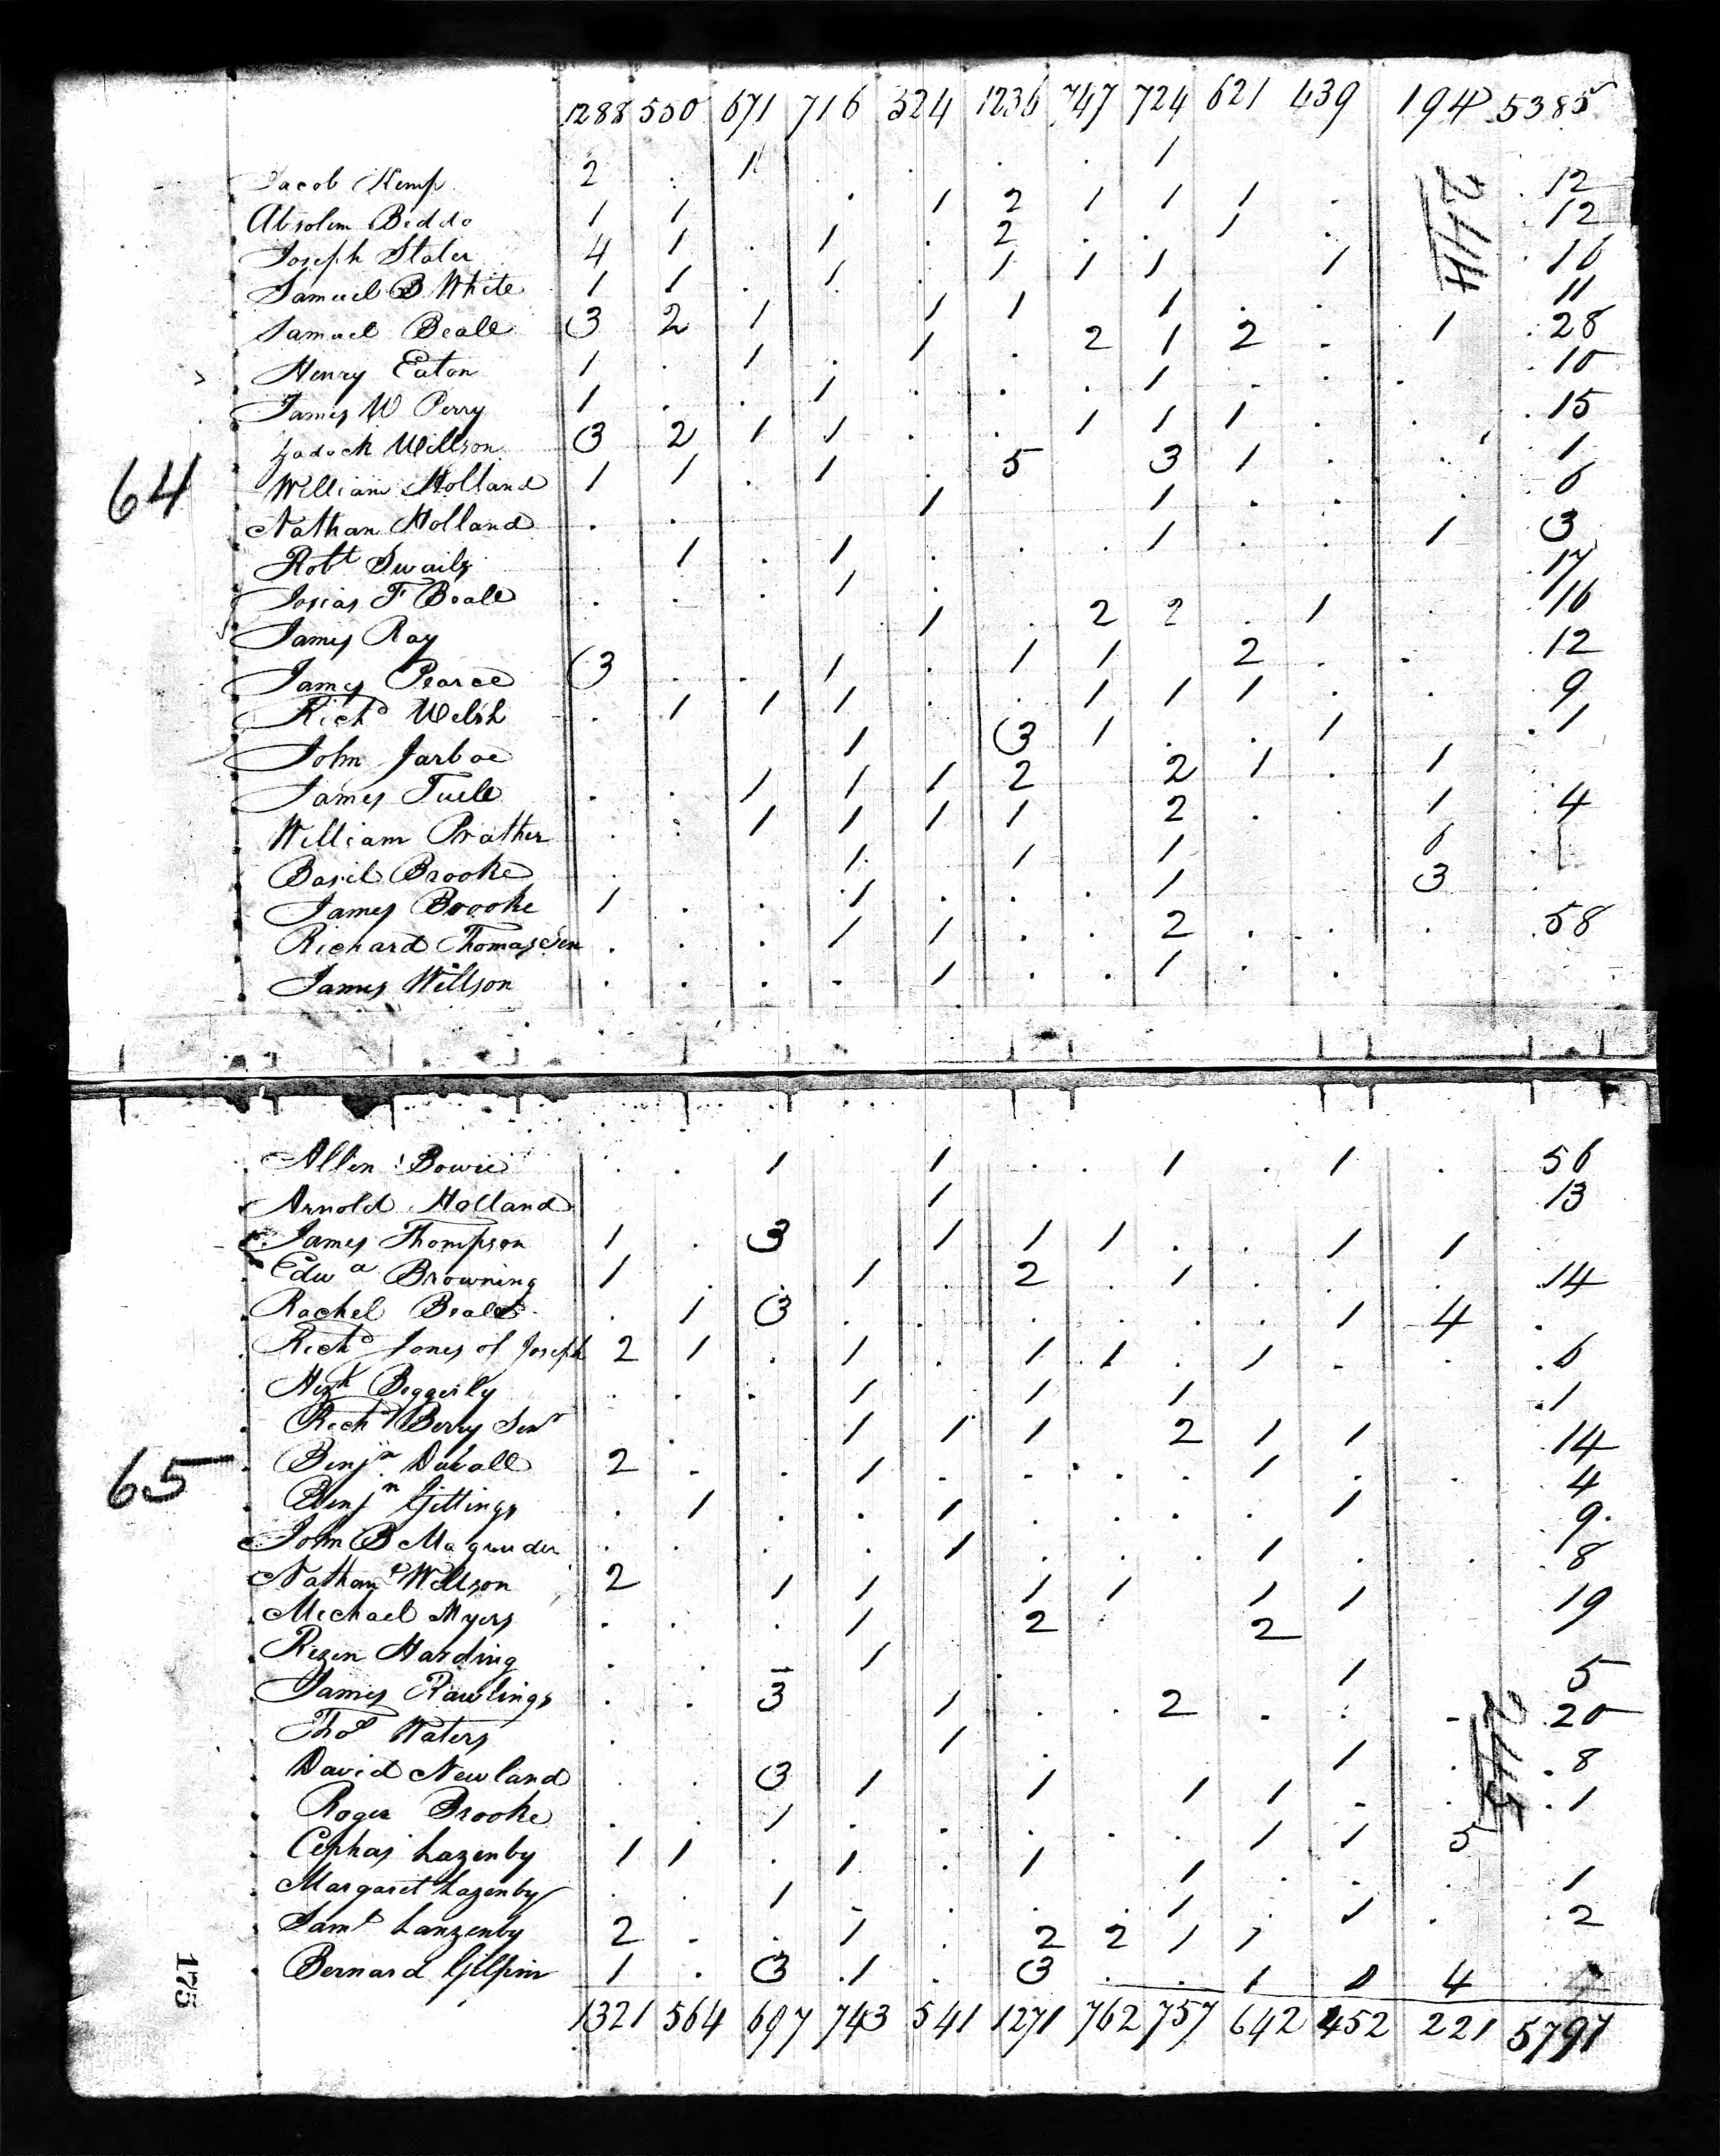 1810 Census, Cracklin District, Montgomery County, Maryland, from the Maryland State Archives.